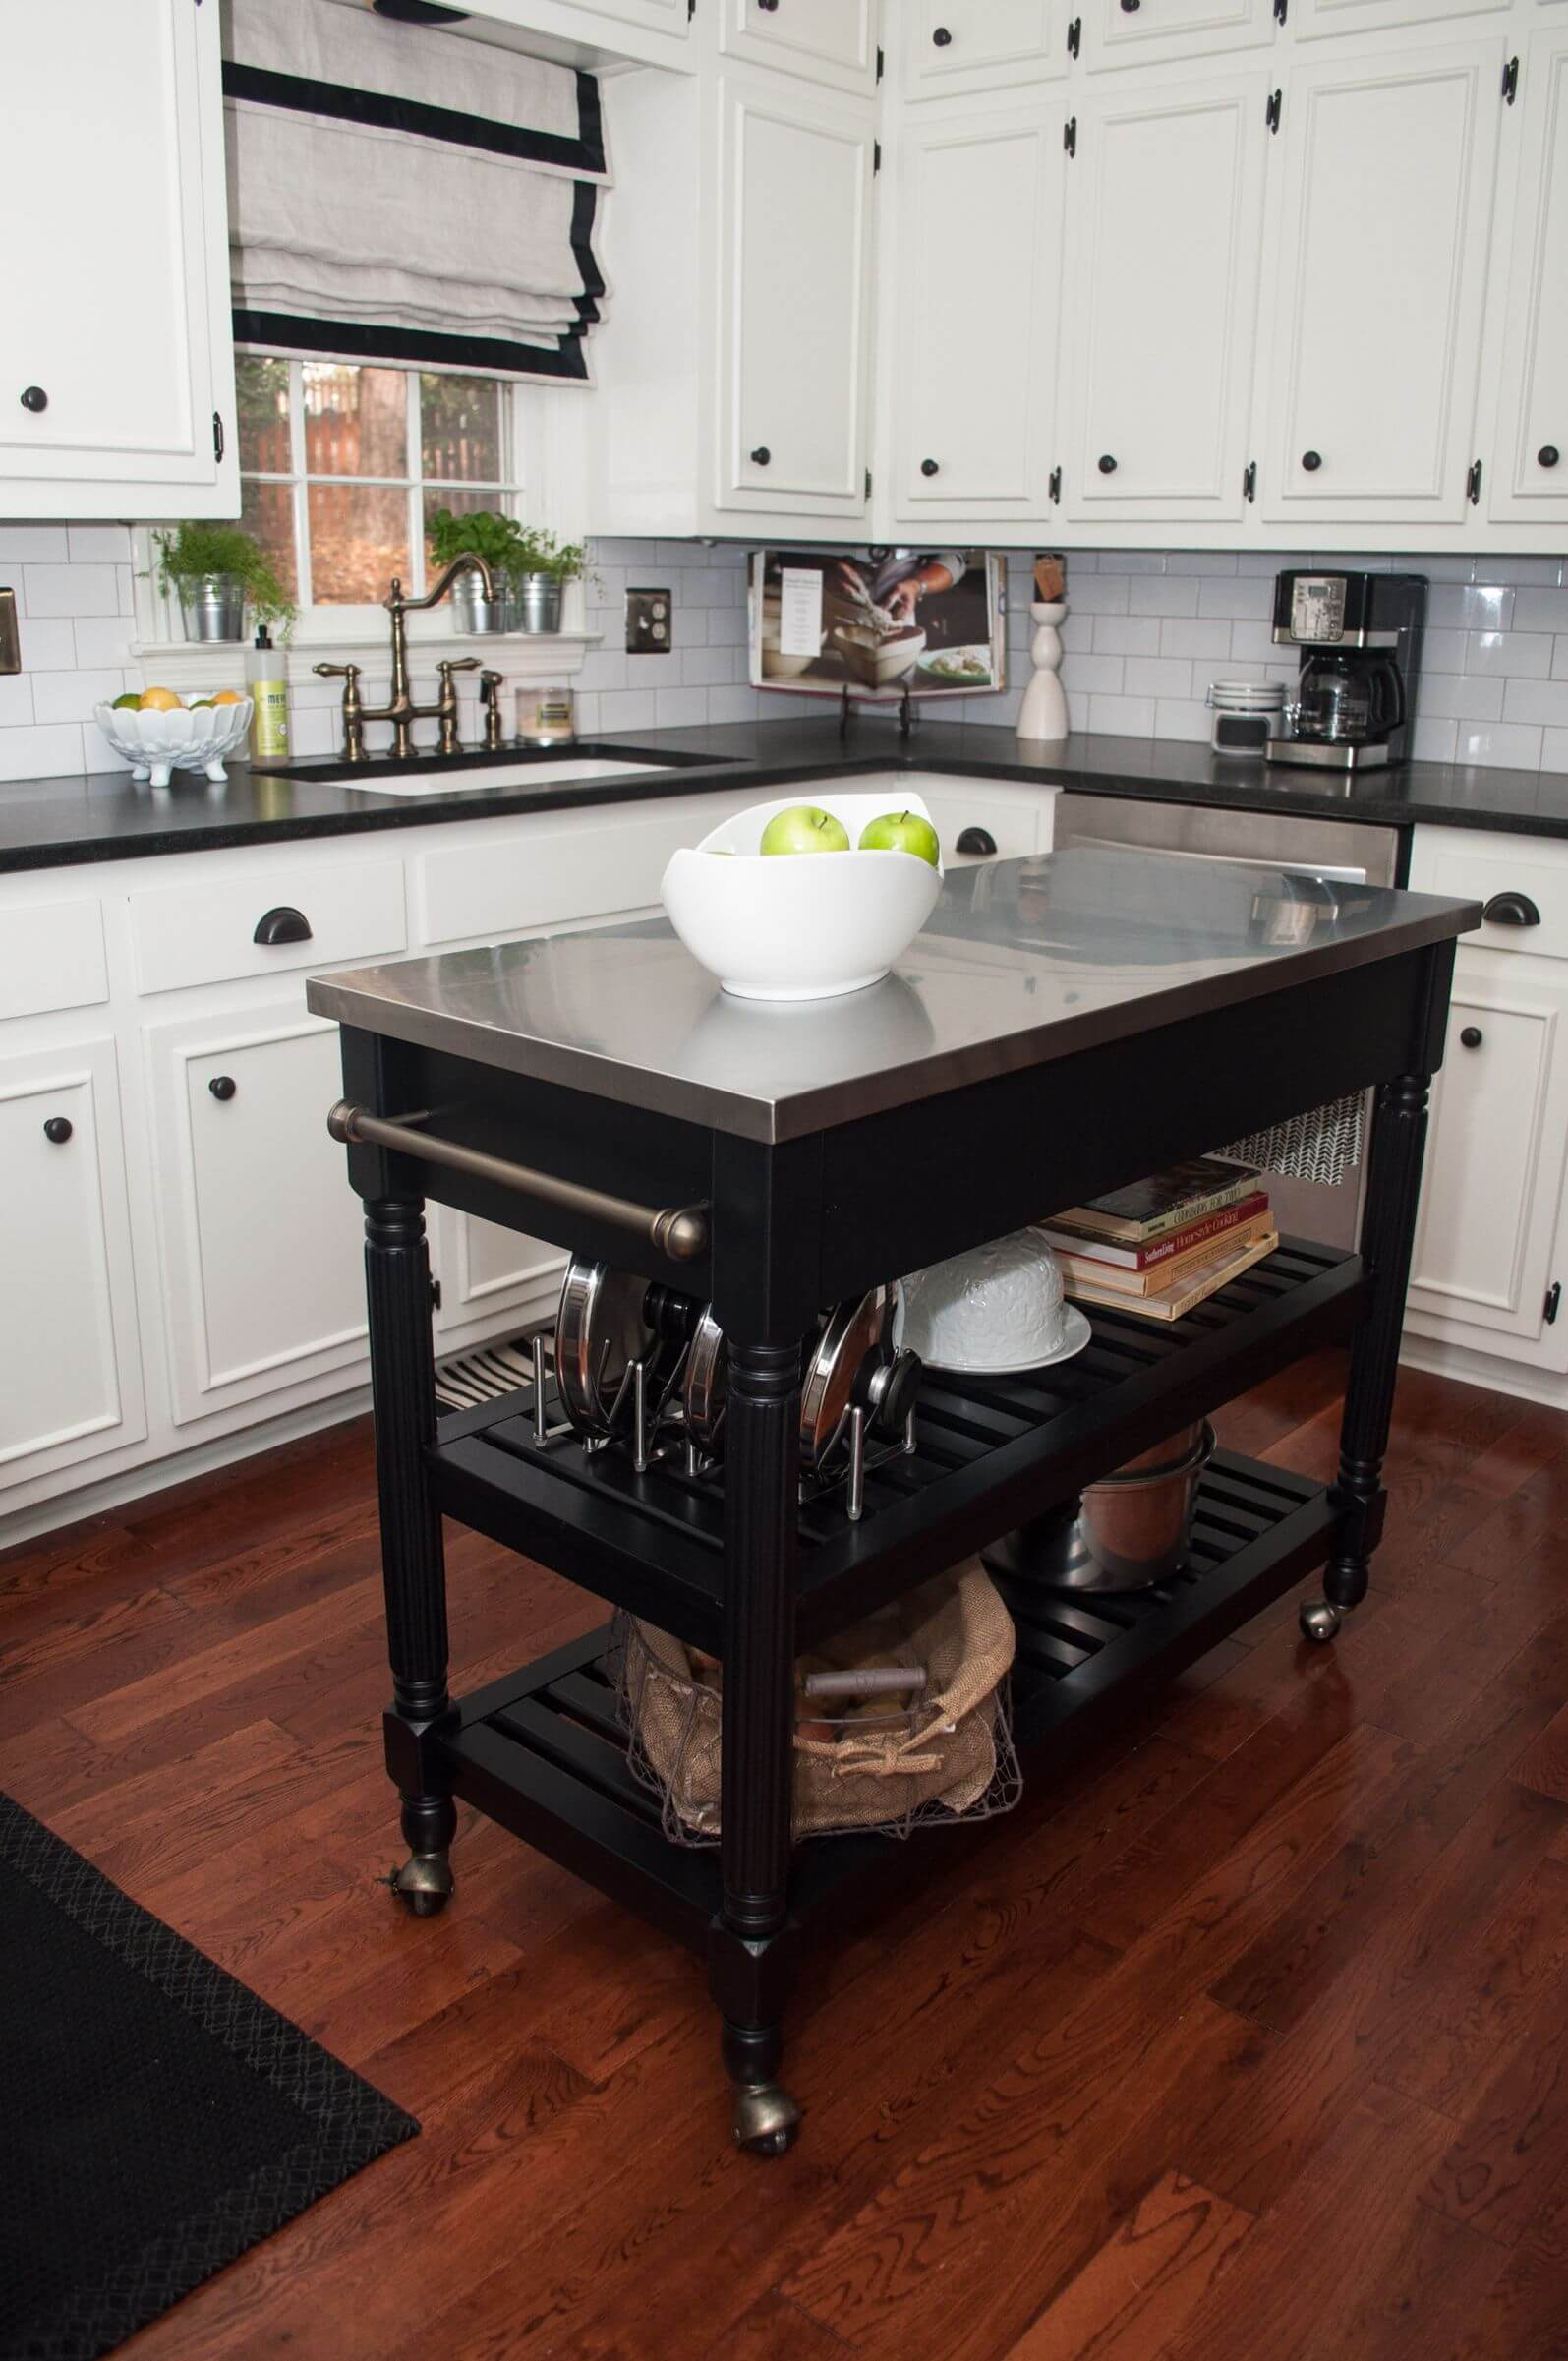 types of small kitchen islands on wheels,Small Kitchen Island On Wheels,Kitchen decor